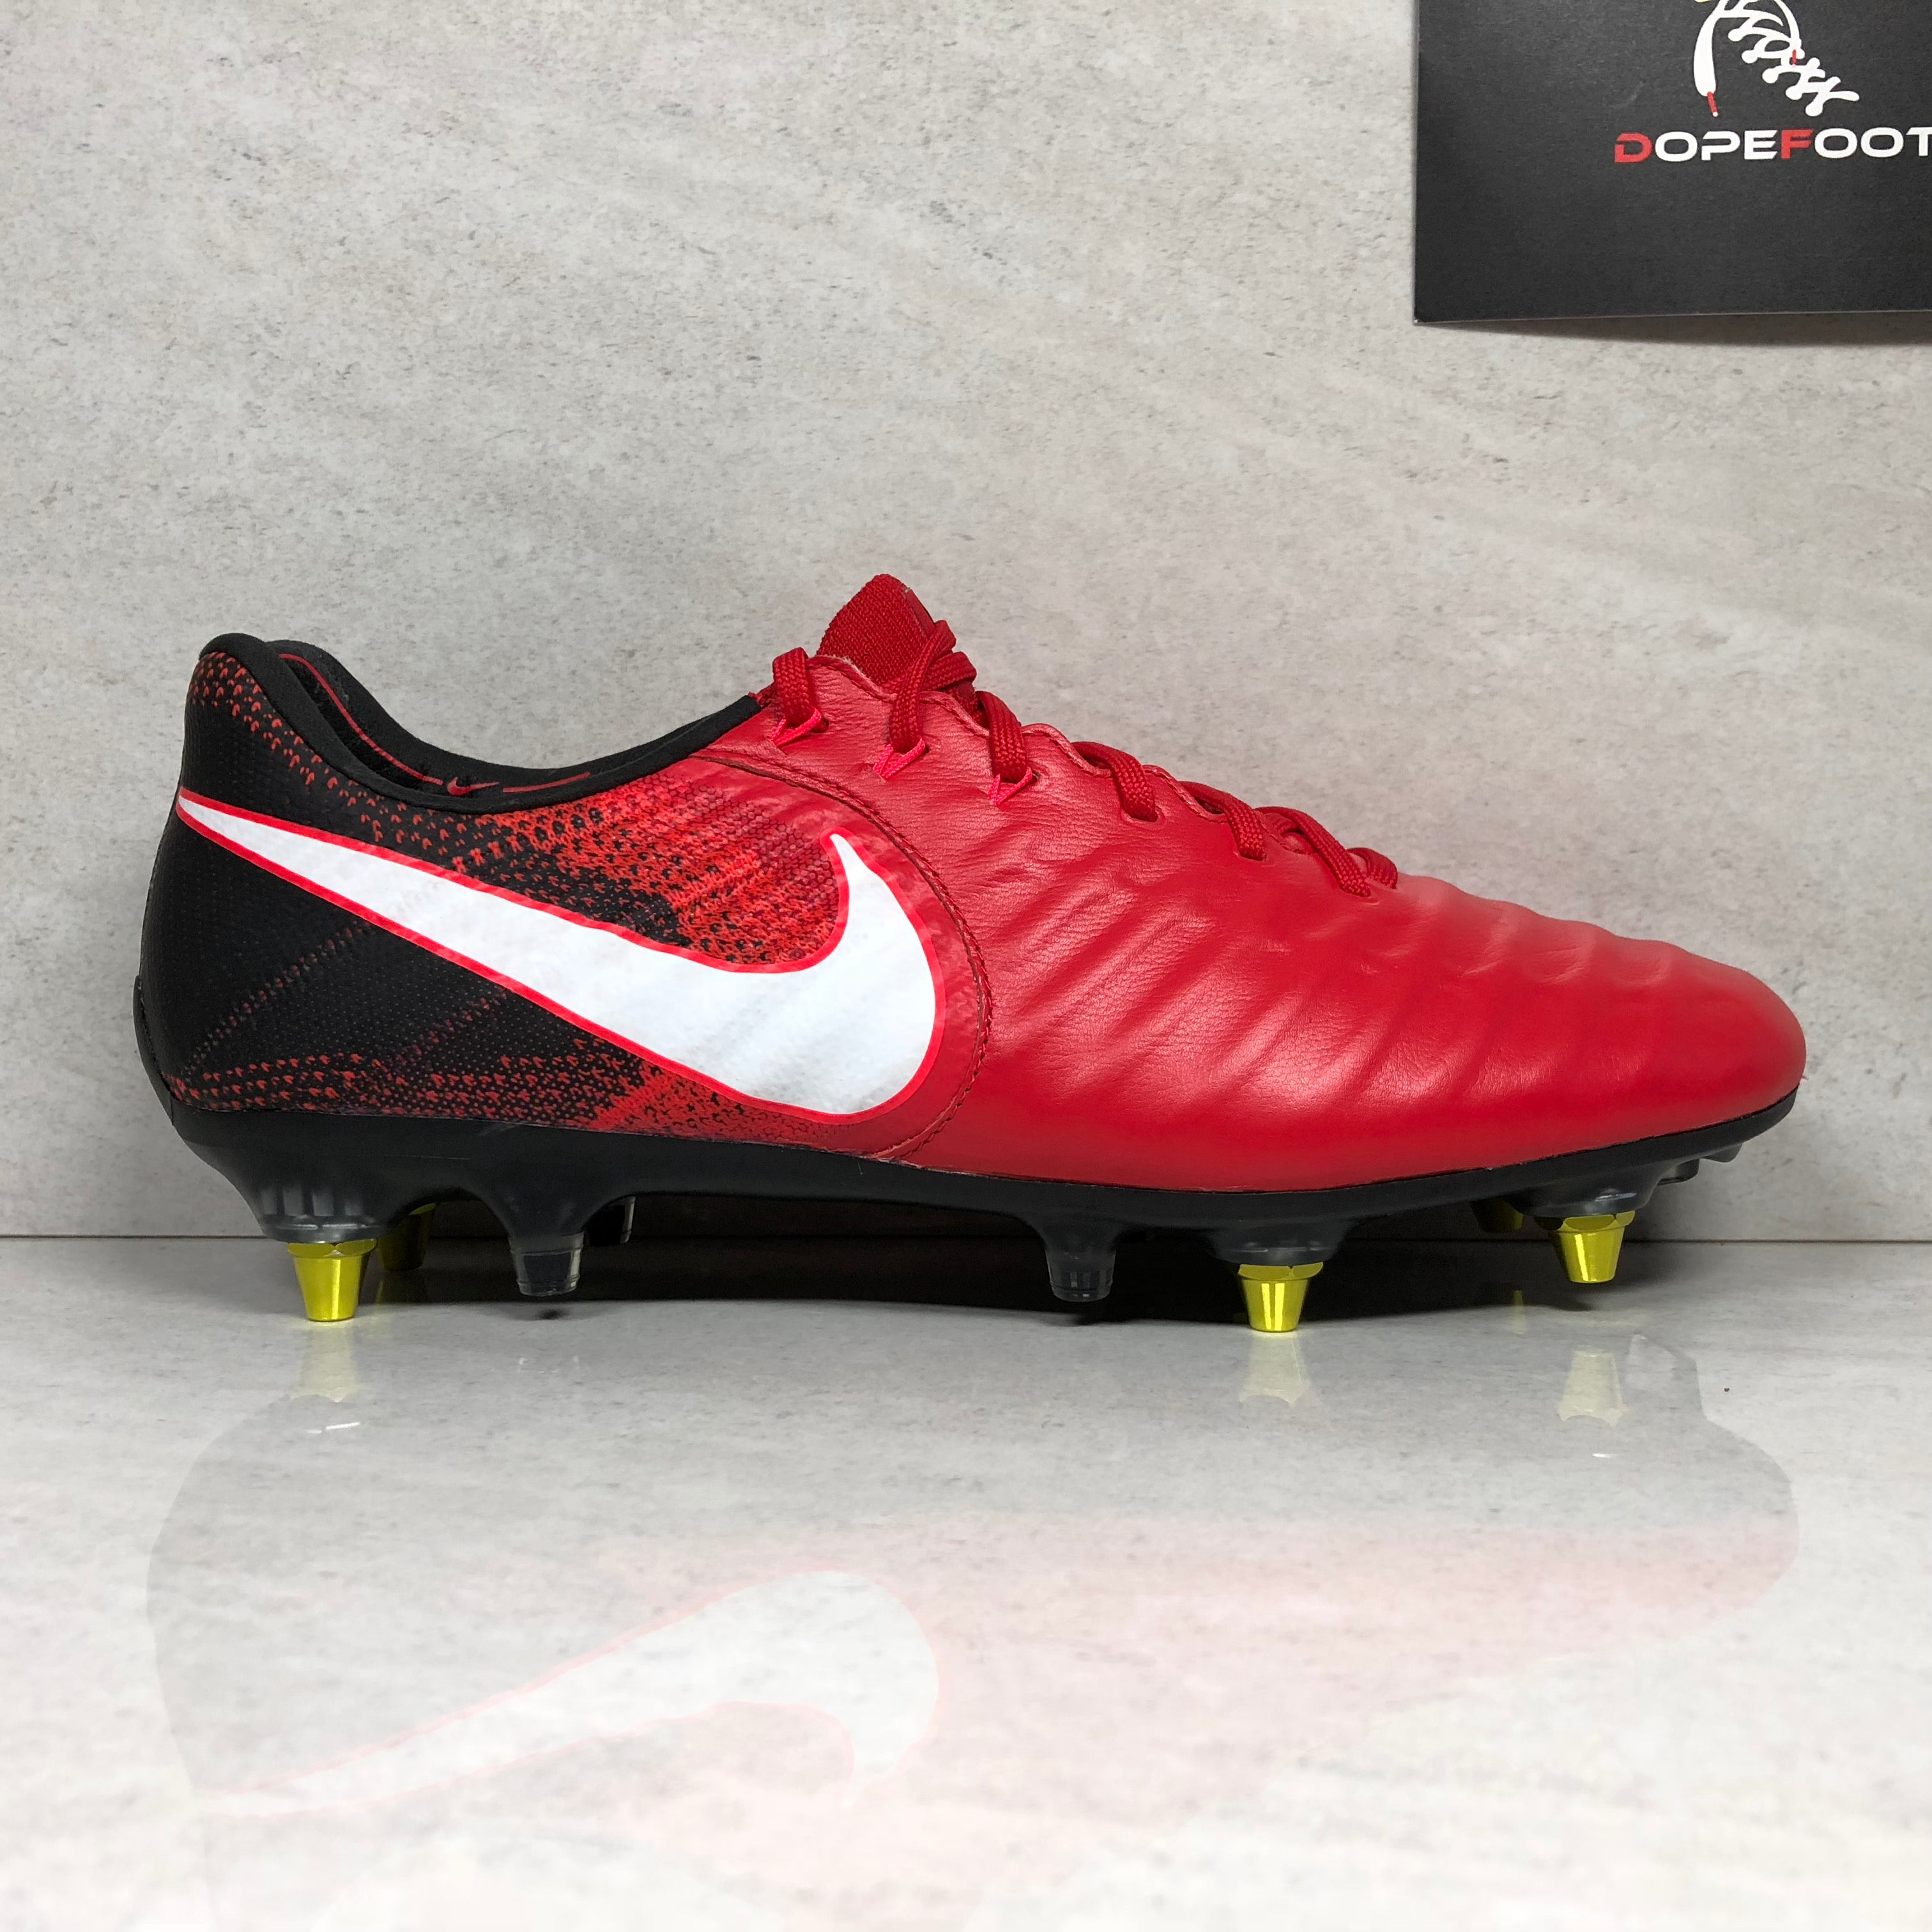 72160054876 DS Tiempo Legend VII SG Pro-AG Soccer Cleats Size 8.5 9 10.5 Red 91780 –  SneakerBinge